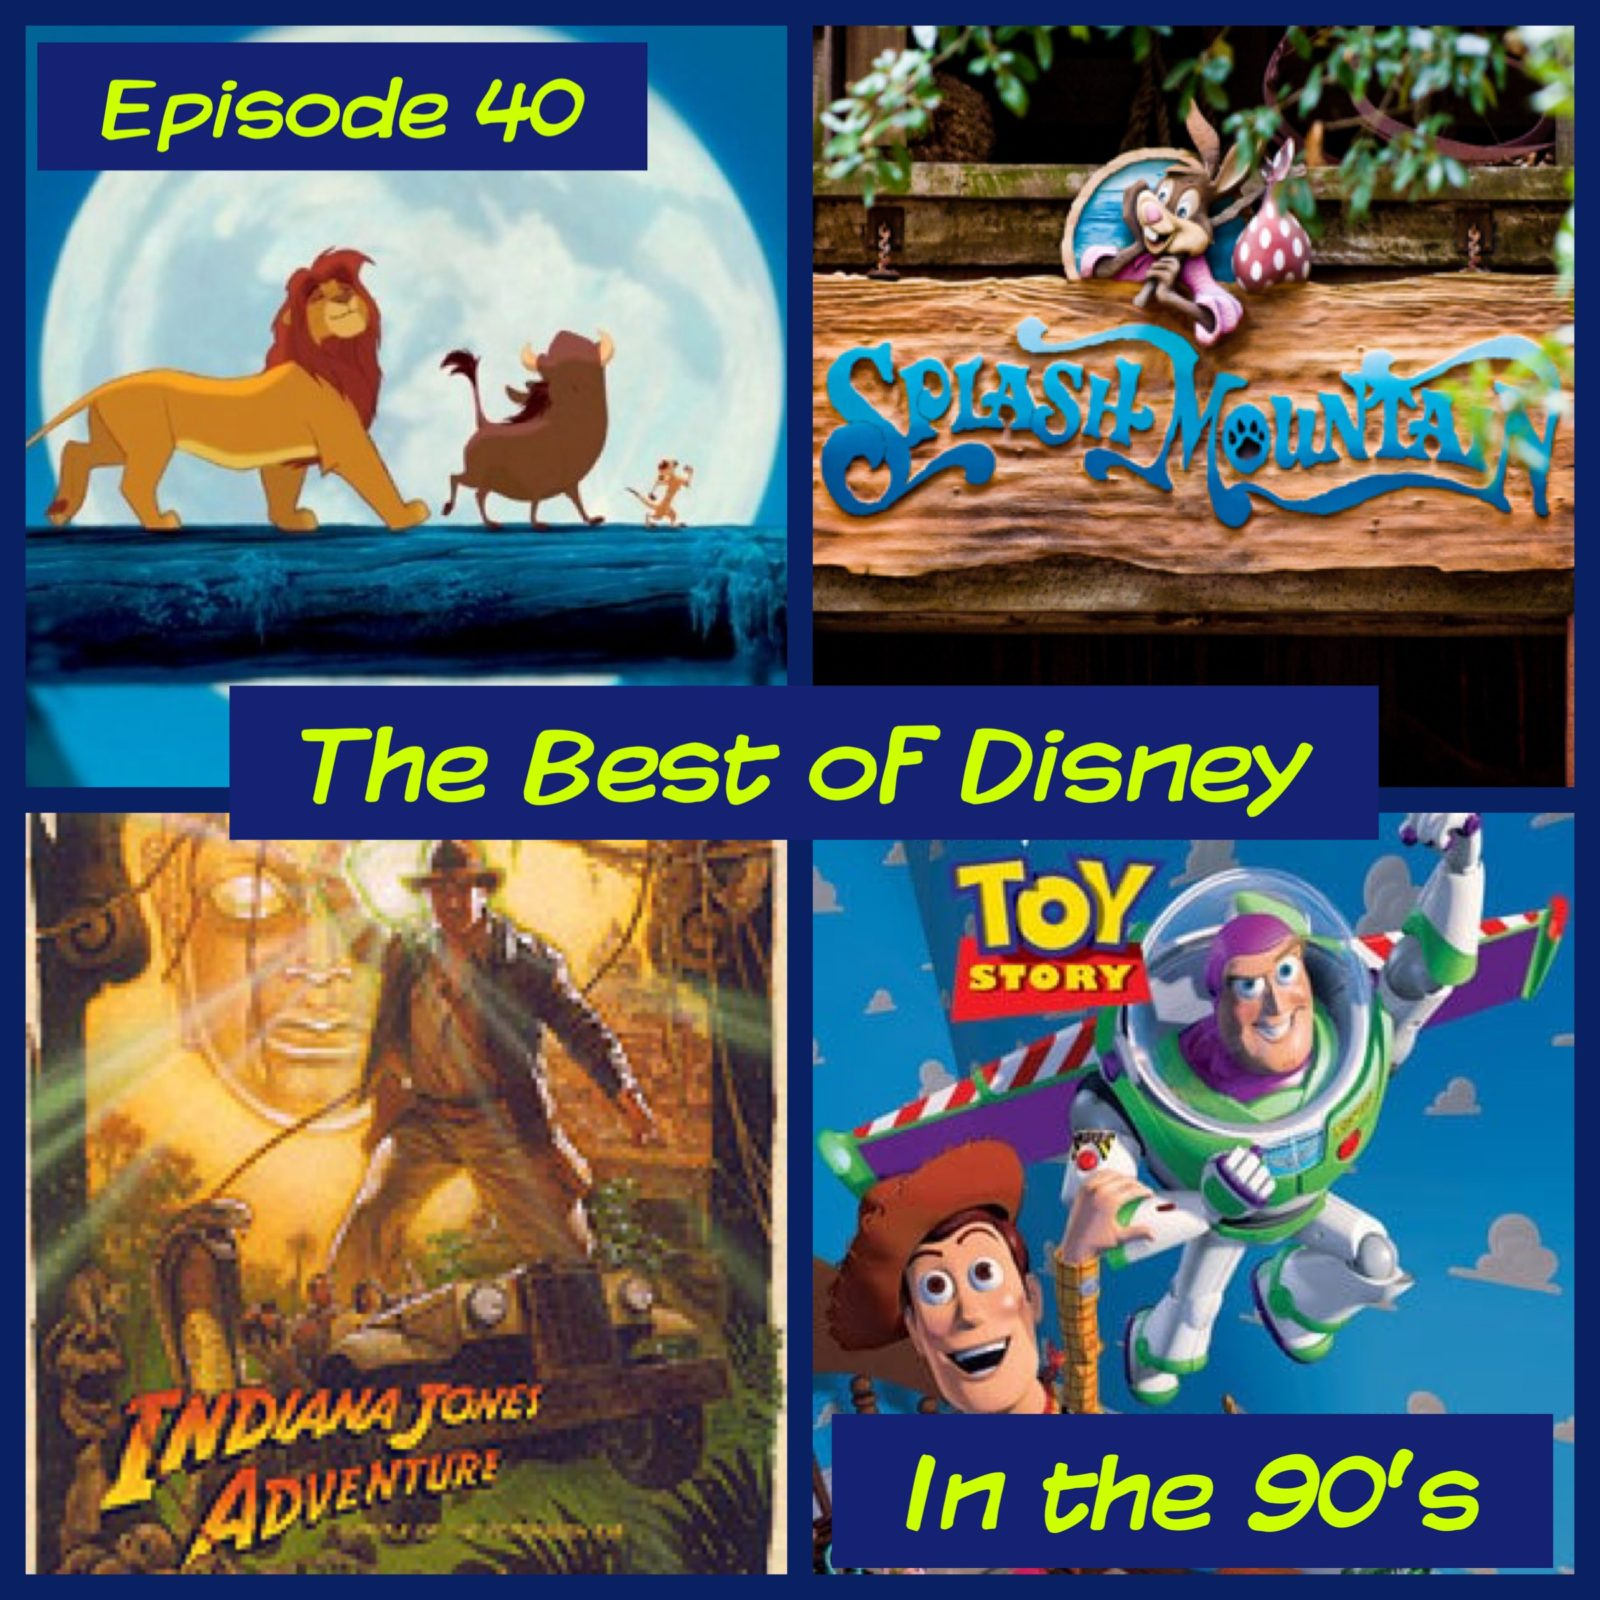 The Best of Disney in the '90s